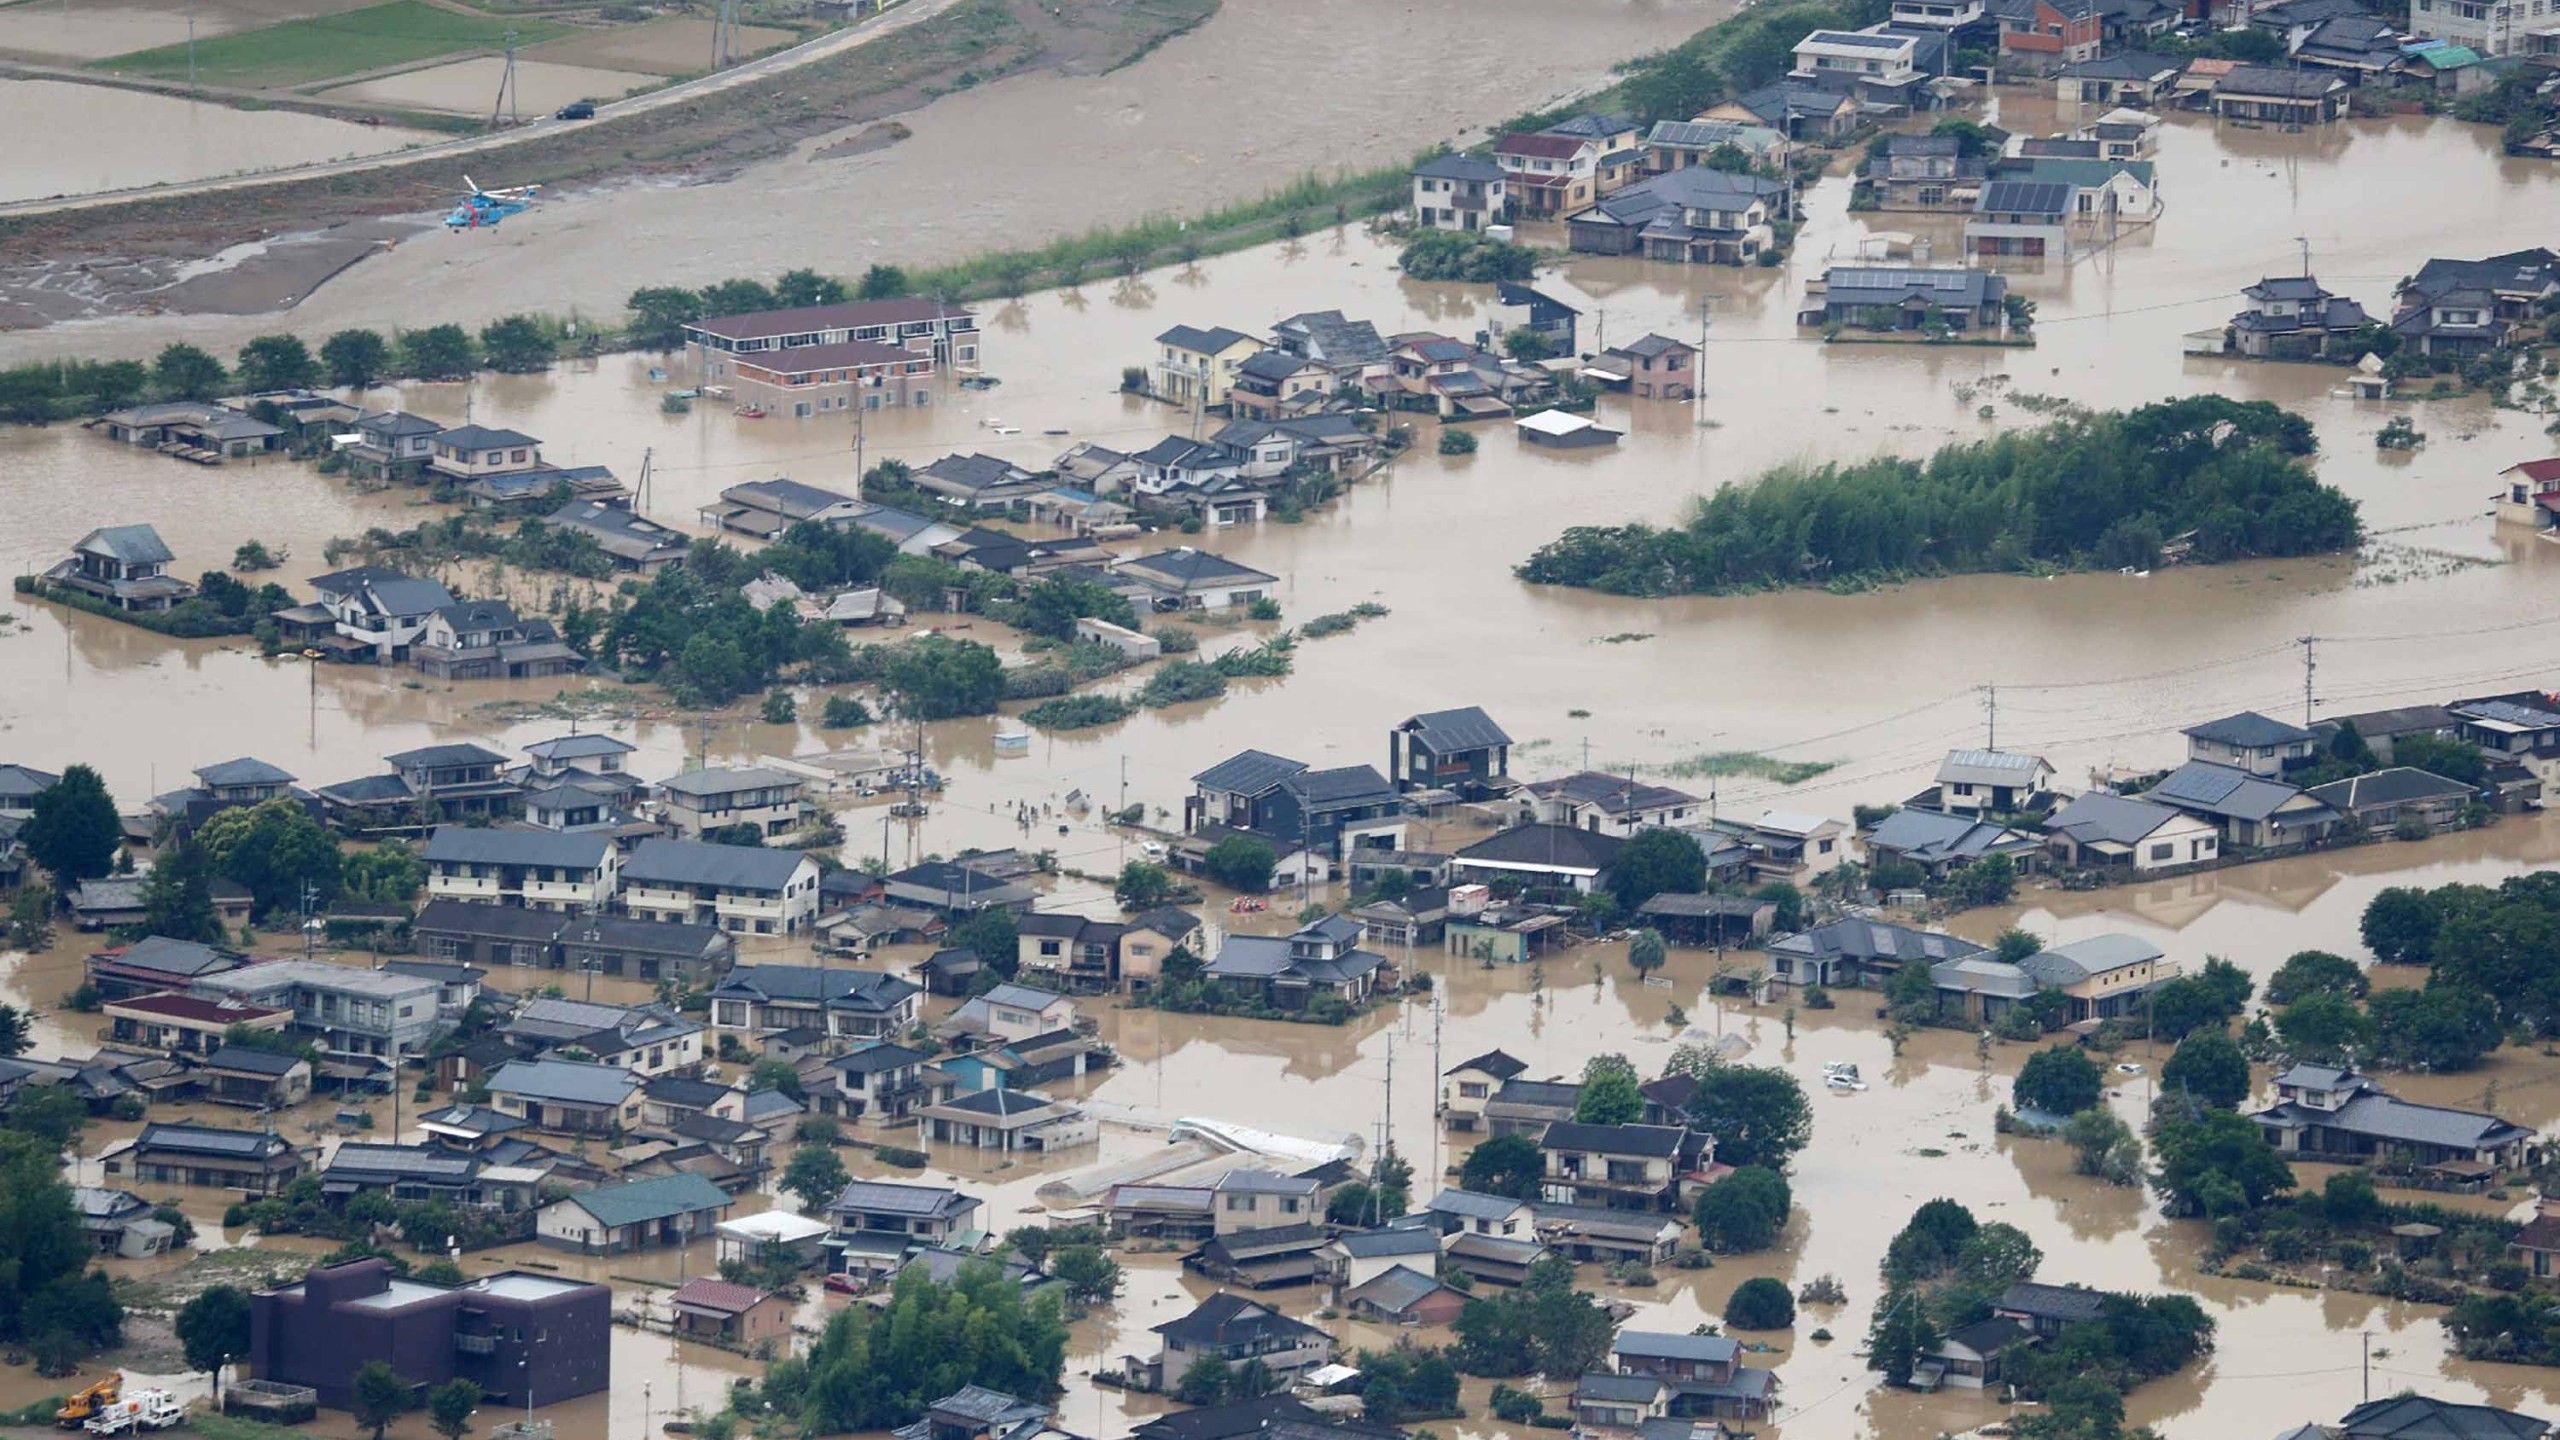 This picture shows inundated houses due to heavy rain in Hitoyoshi, Kumamoto prefecture on July 4, 2020. (STR/JIJI PRESS/AFP via Getty Images)